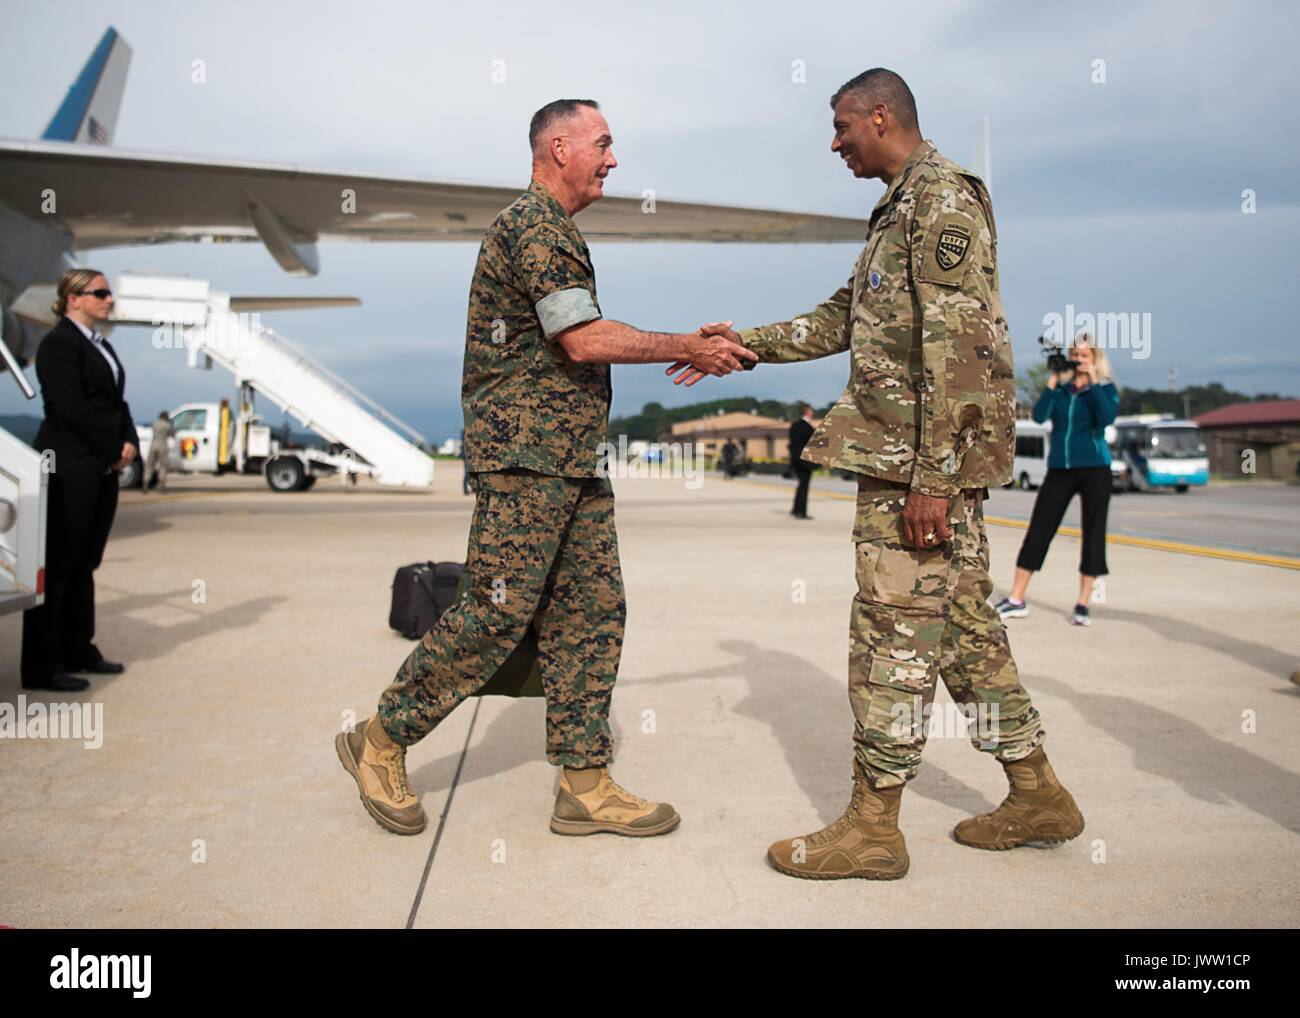 U.S. Chairman of the Joint Chiefs Gen. Joseph Dunford, left, is greeted by Army Gen. Vincent Brooks, commander, U.S. Forces Korea, on arrival at Osan Air Base August 13, 2017 in Pyeongtaek, Gyeonggi-do, South Korea. Dunford is meeting military leaders in the Asia-Pacific region as tensions rise with North Korea over nuclear and ballistic missiles tests. - Stock Image